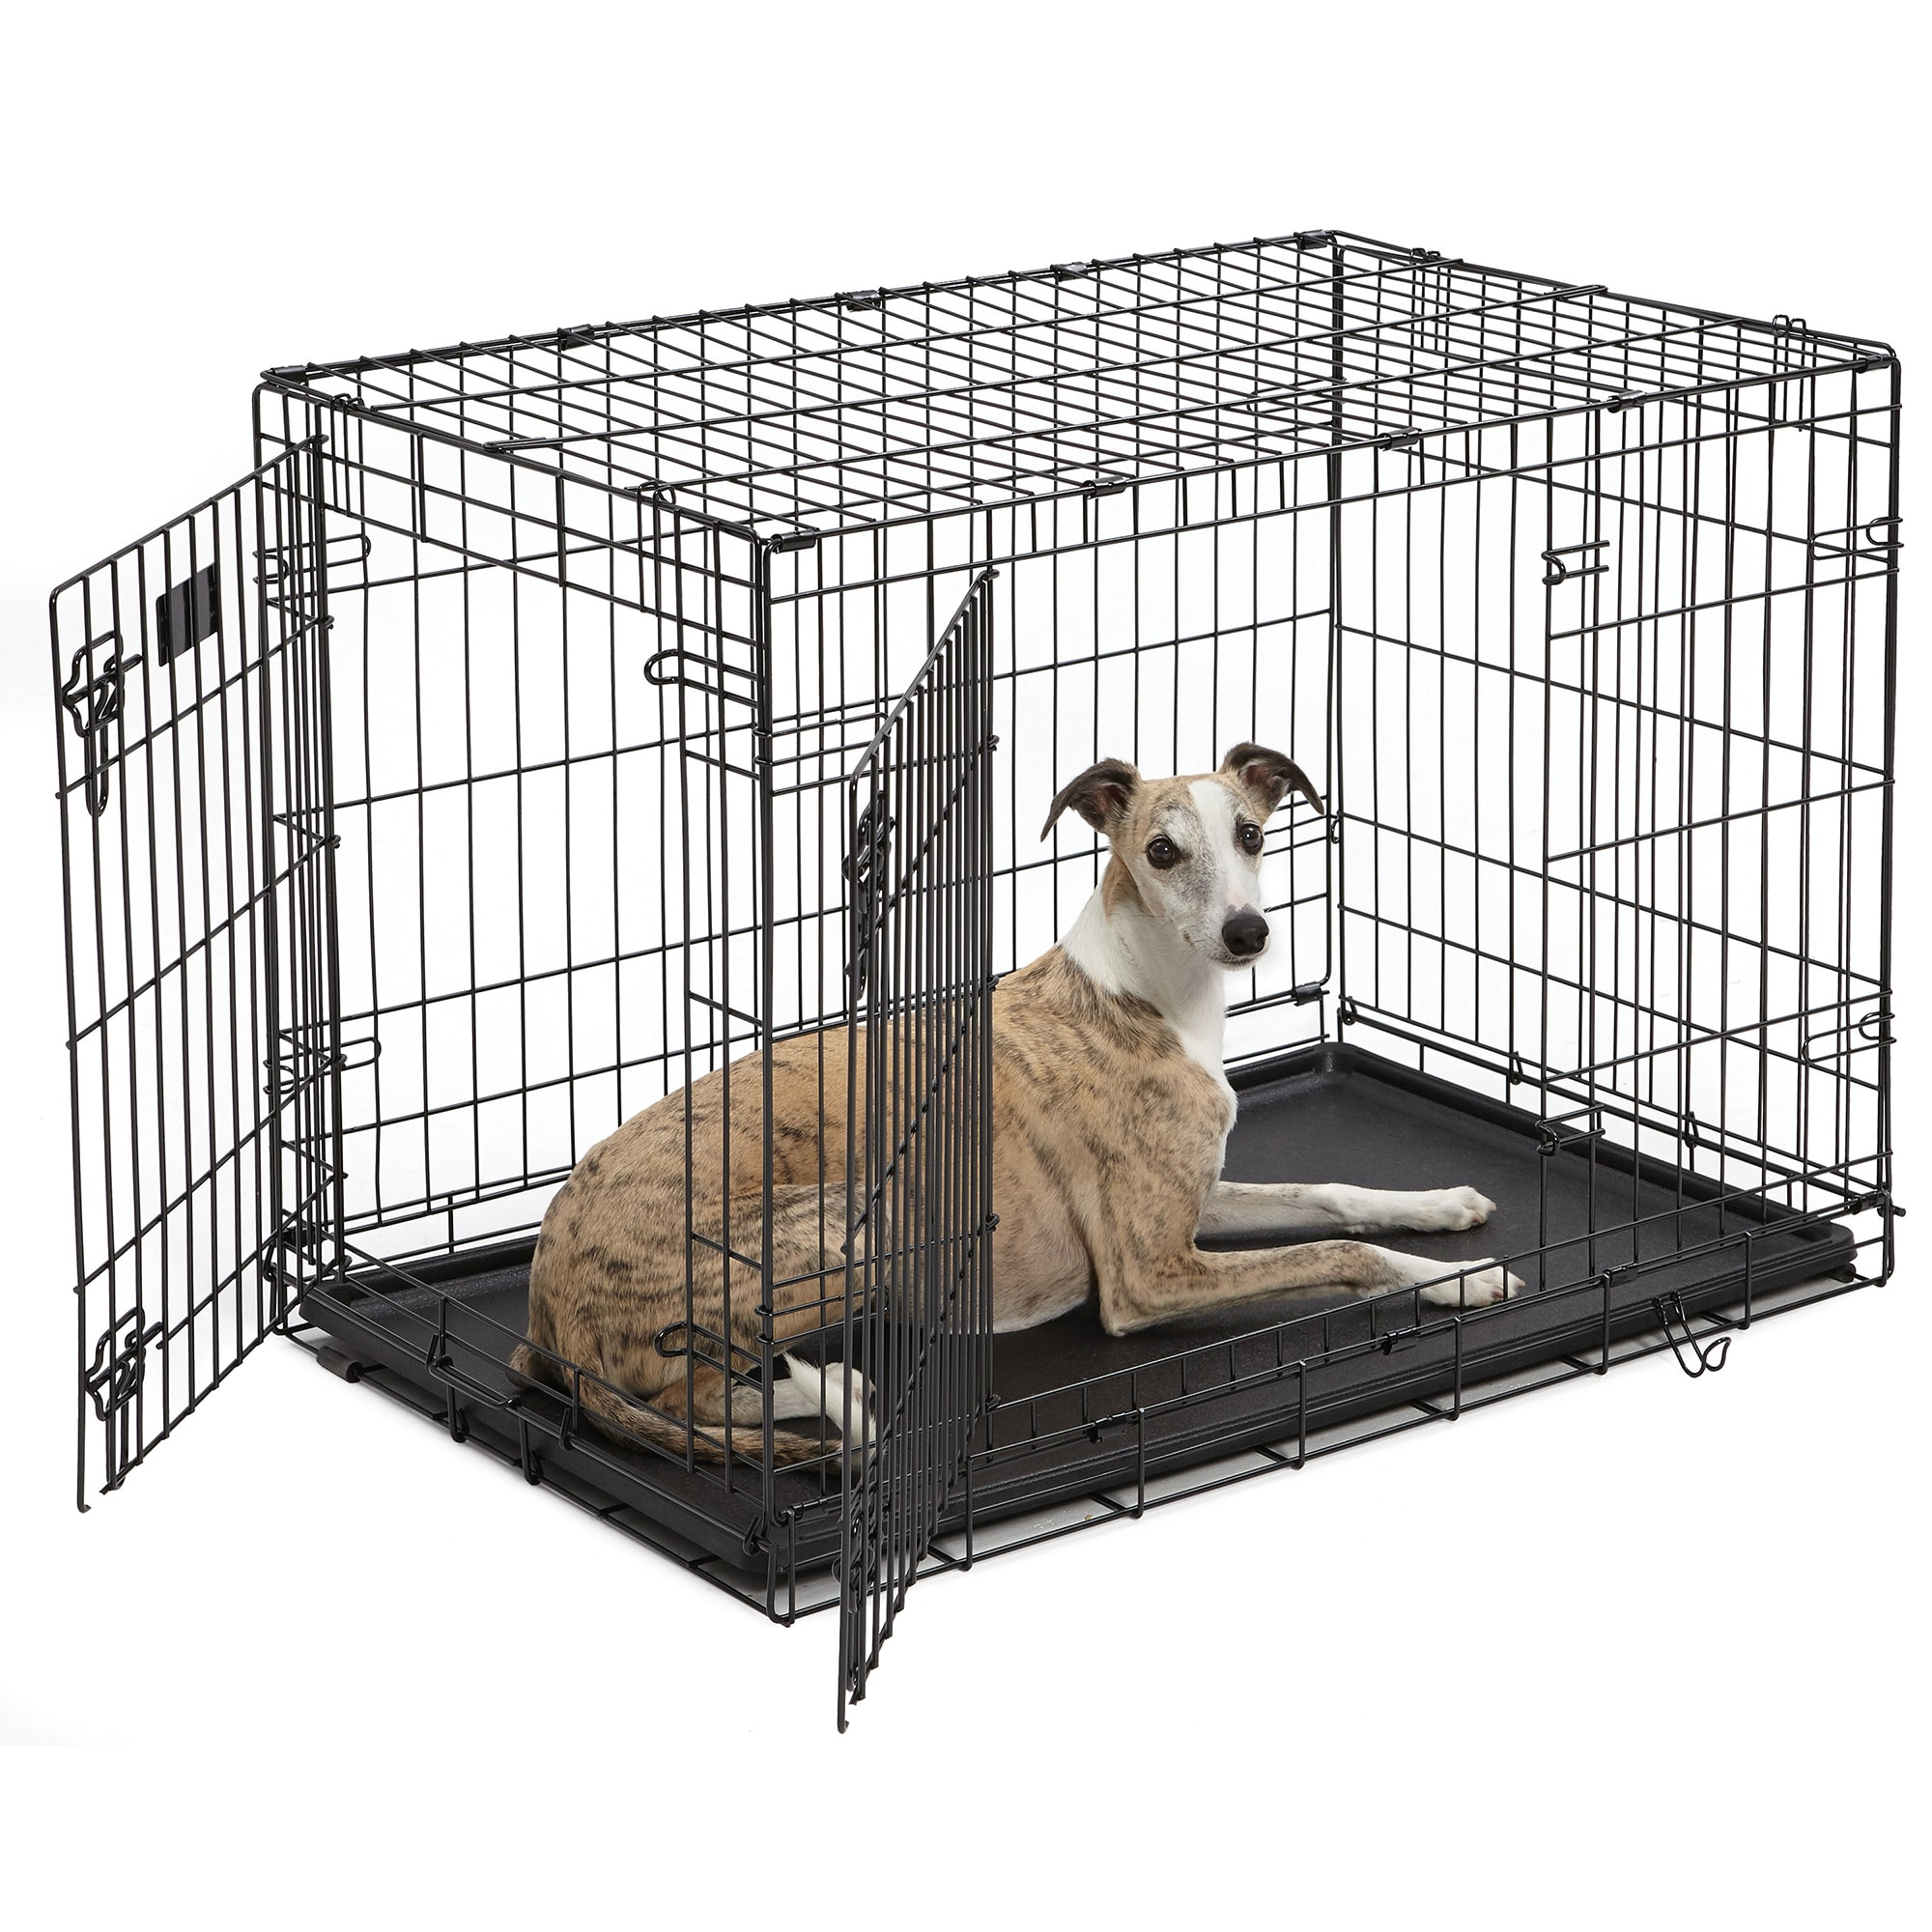 Midwest Icrate Double Door Folding Dog Crate 36 L X 23 W X 25 H Petco